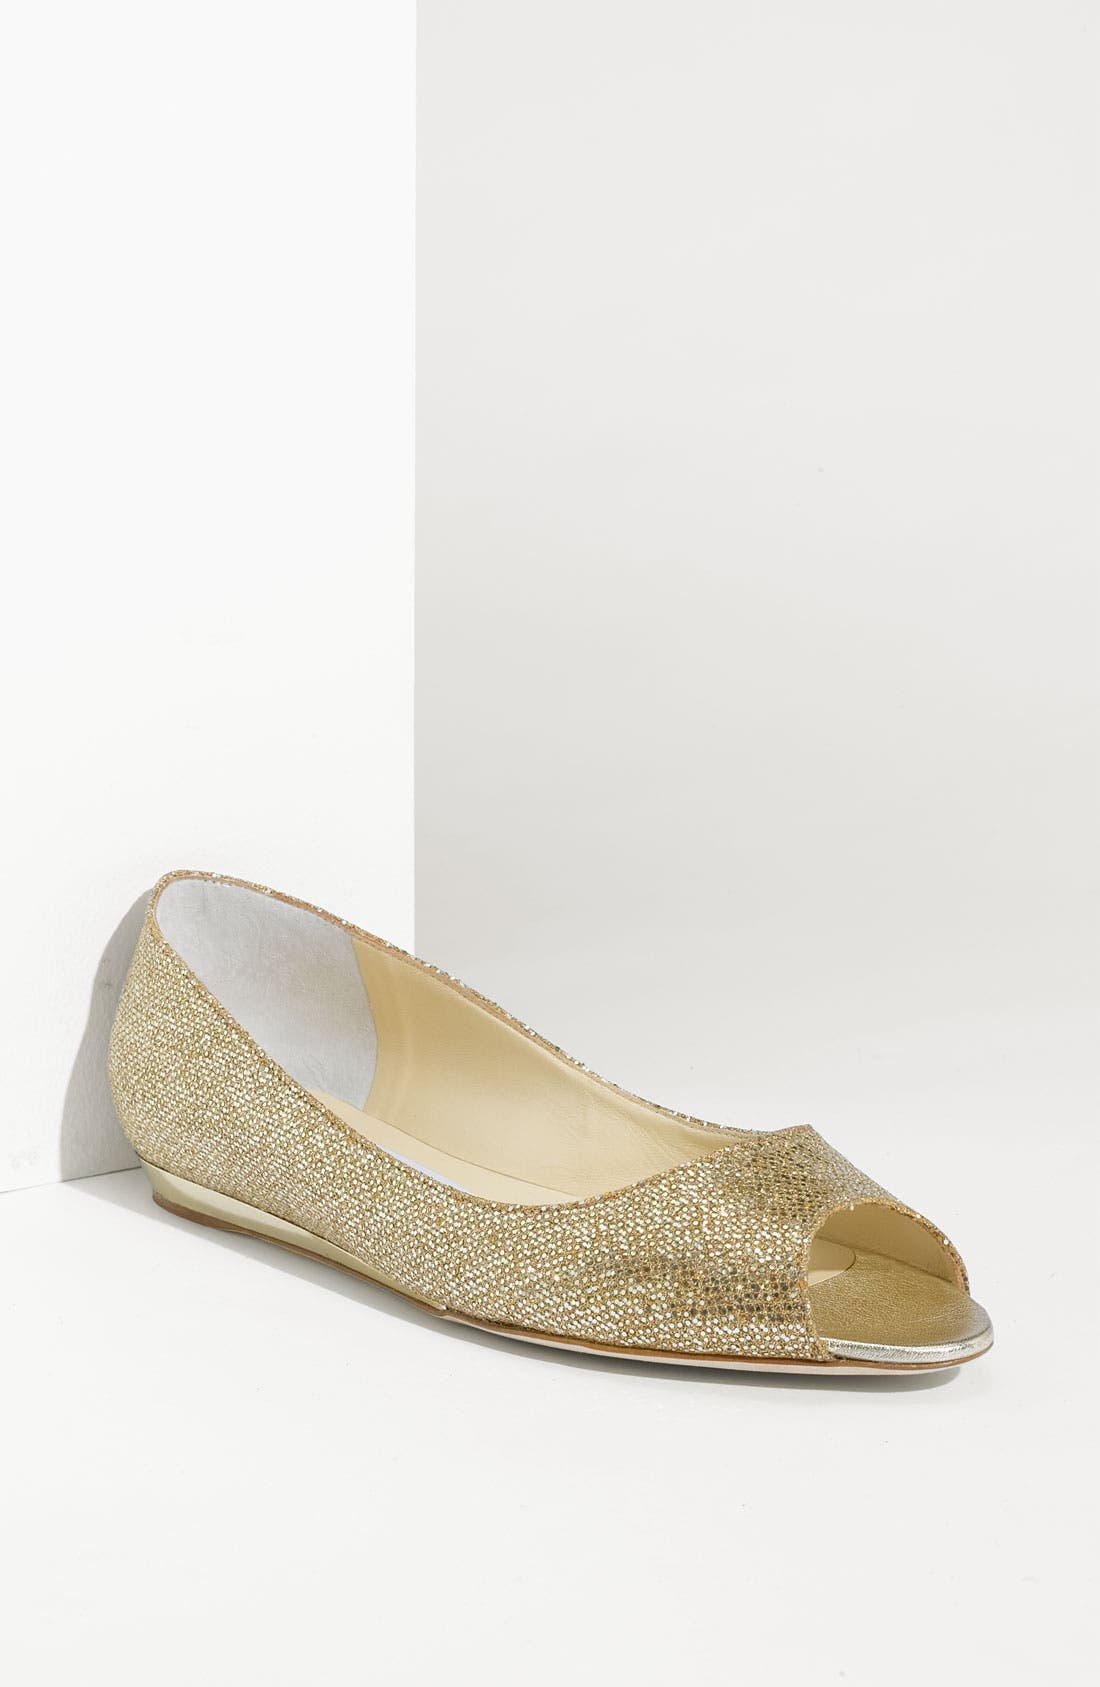 Alternate Image 1 Selected - Jimmy Choo 'Beck' Wedge Flat